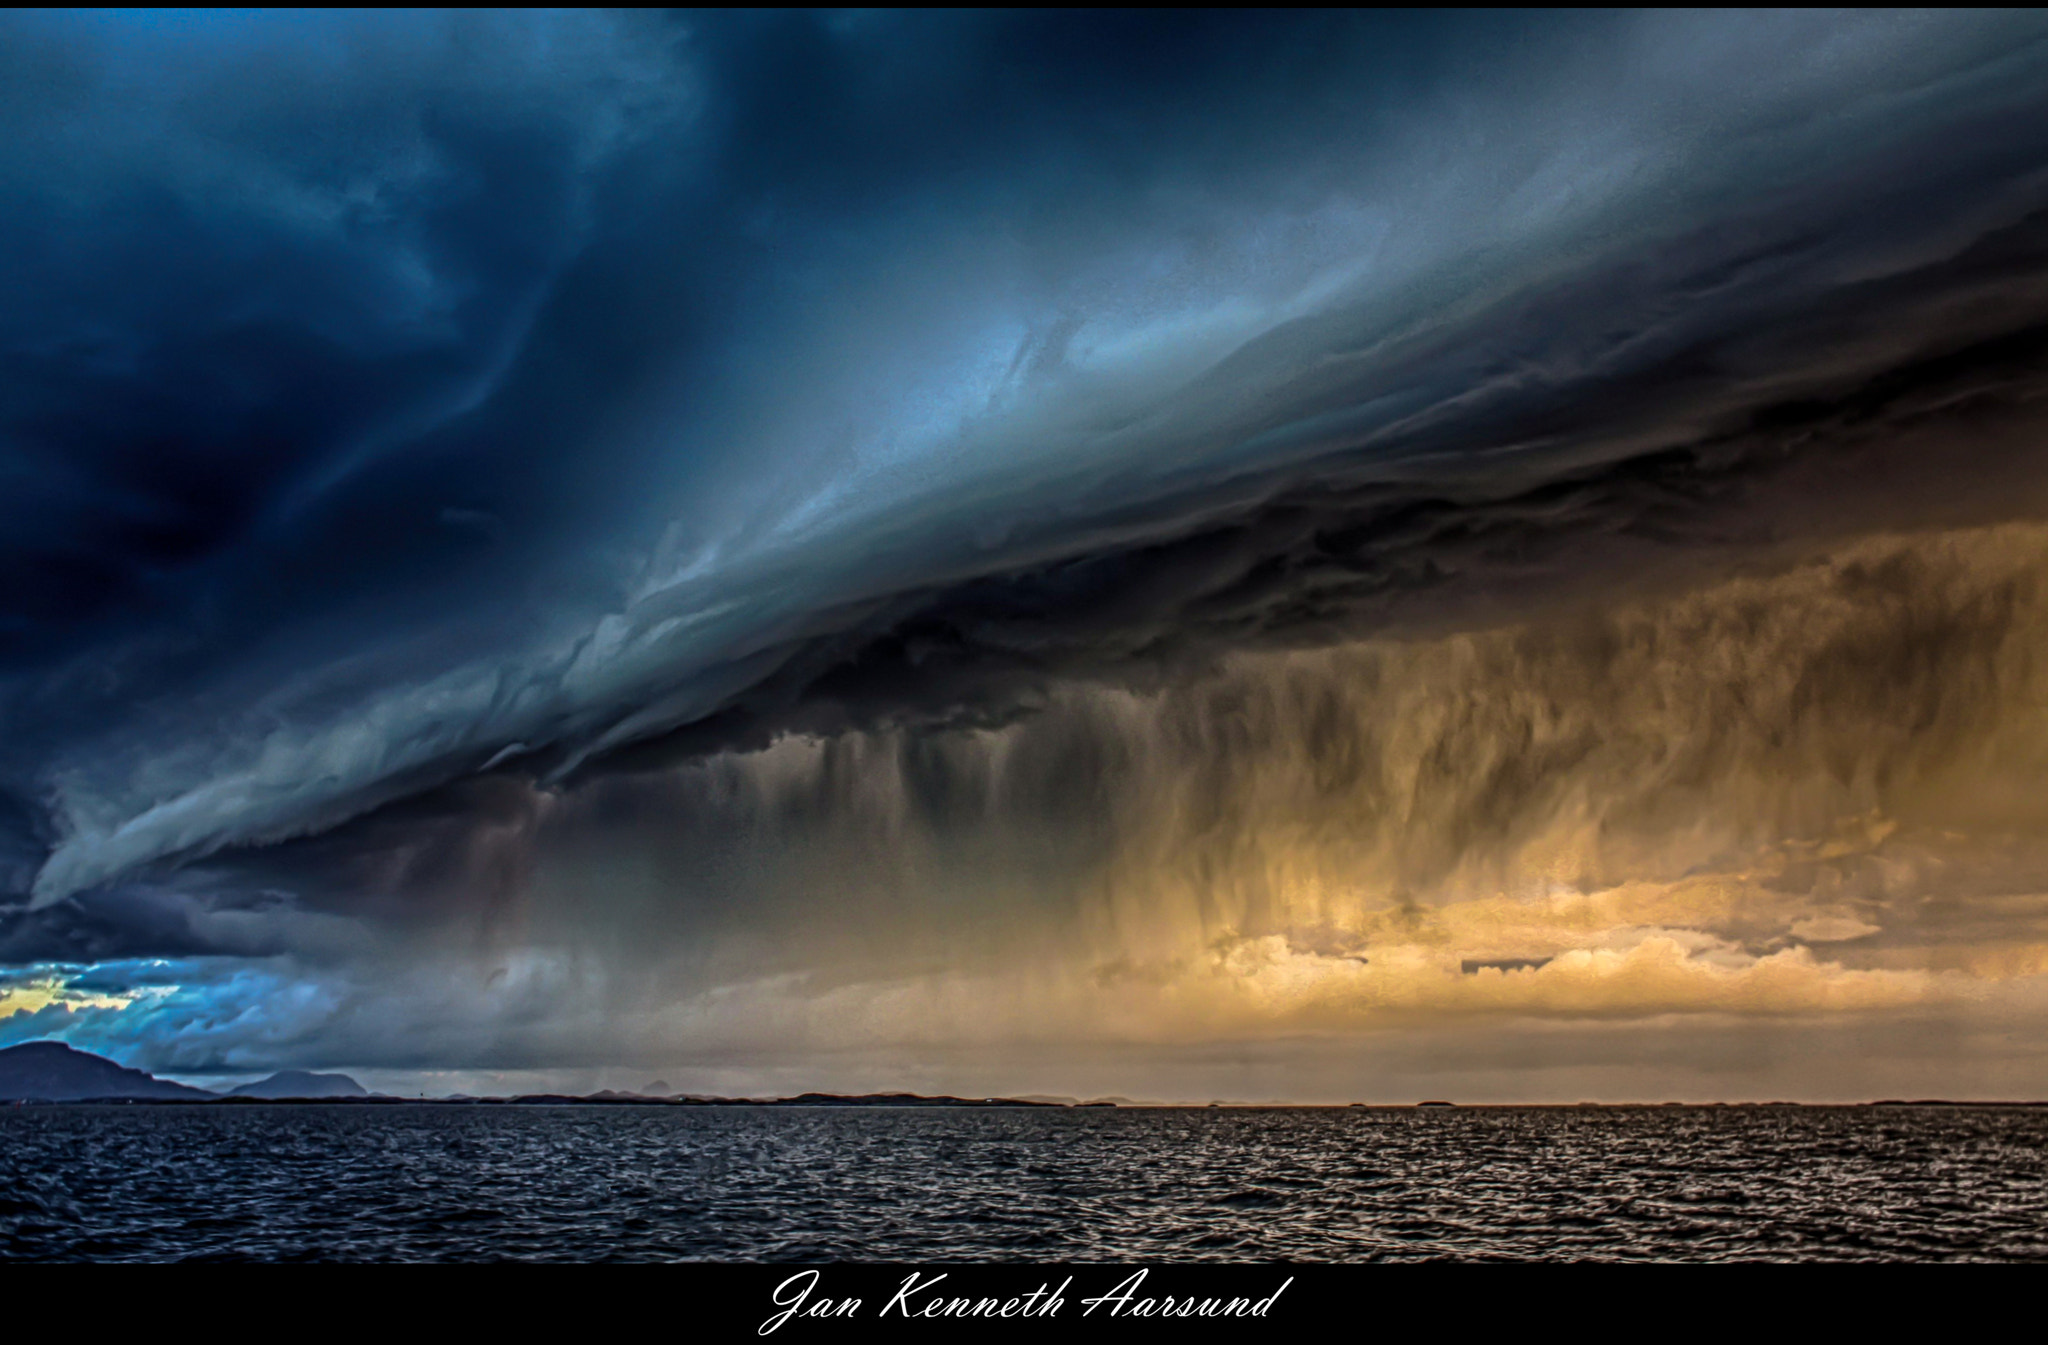 Photograph Thundercloud by Jan Kenneth Aarsund on 500px